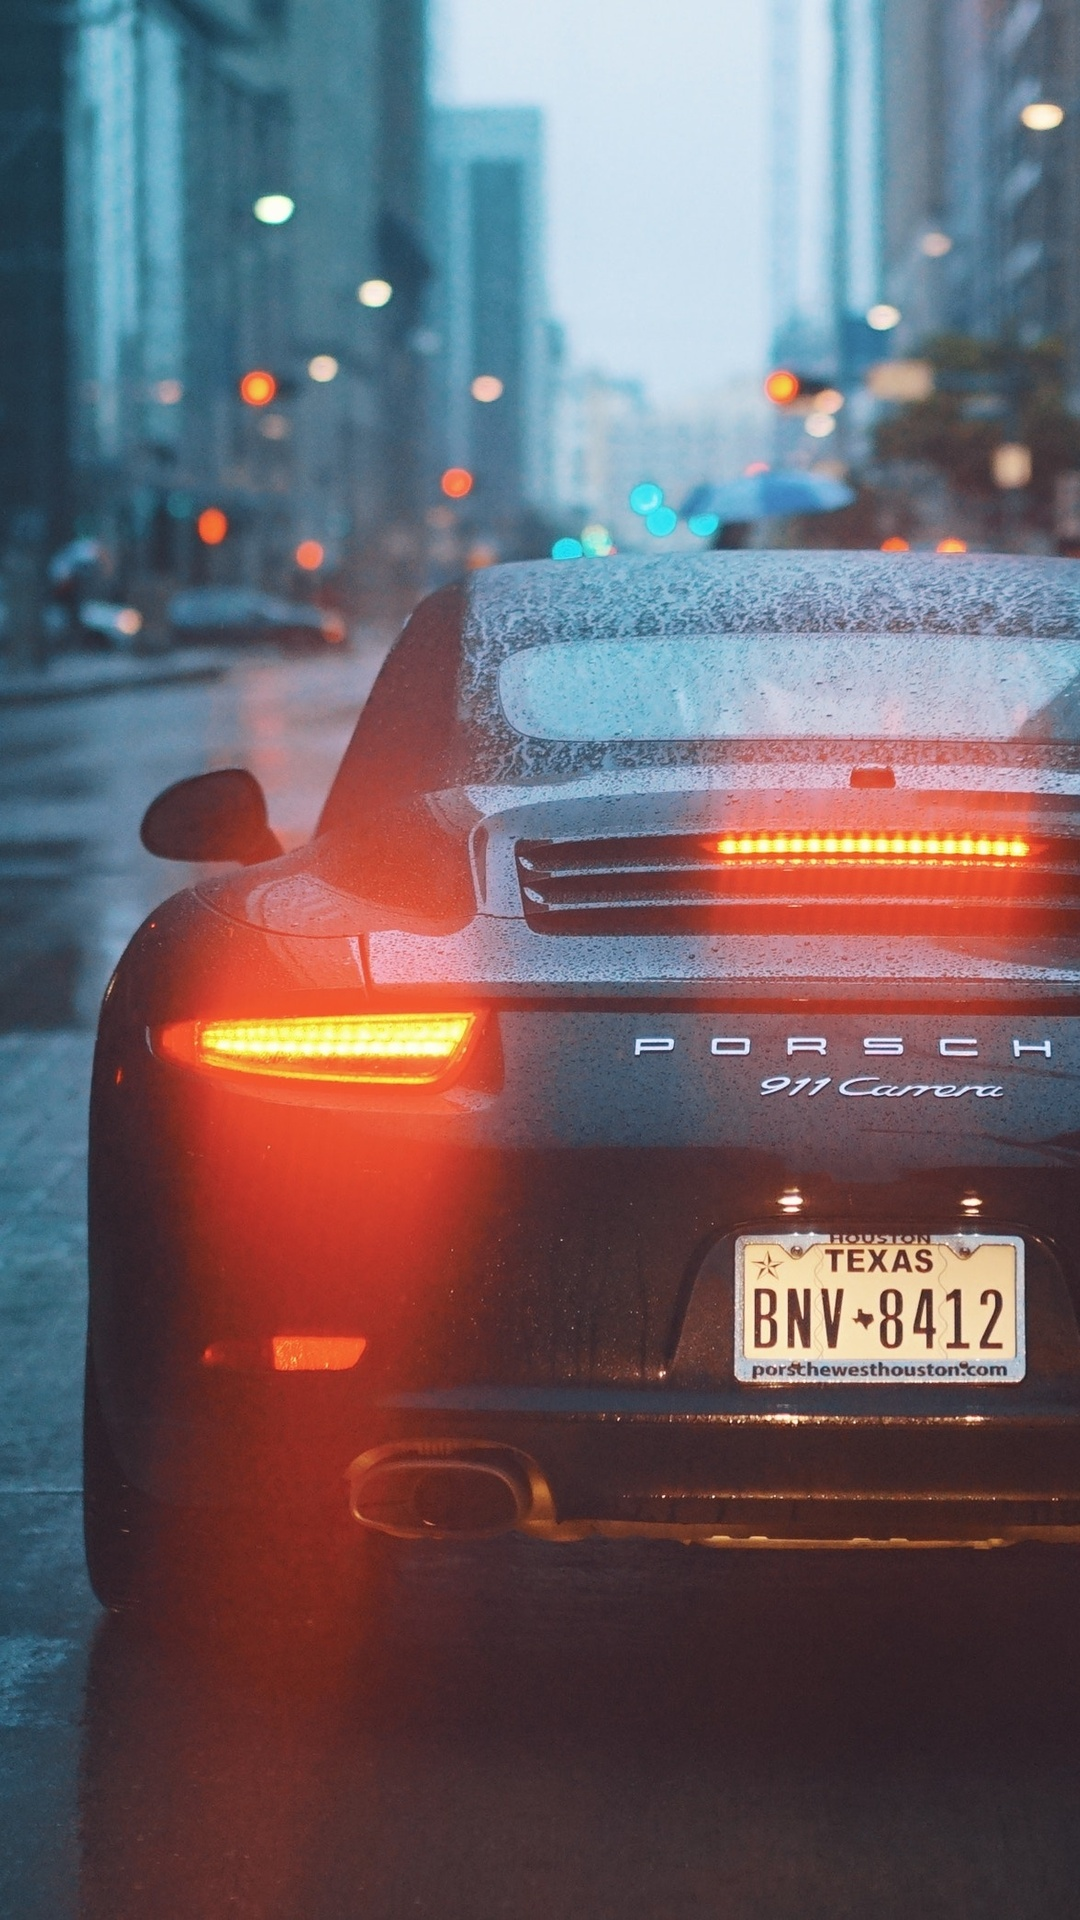 1080x1920 Porsche 911 Carrera Talilights Bokeh Rain City Iphone 7